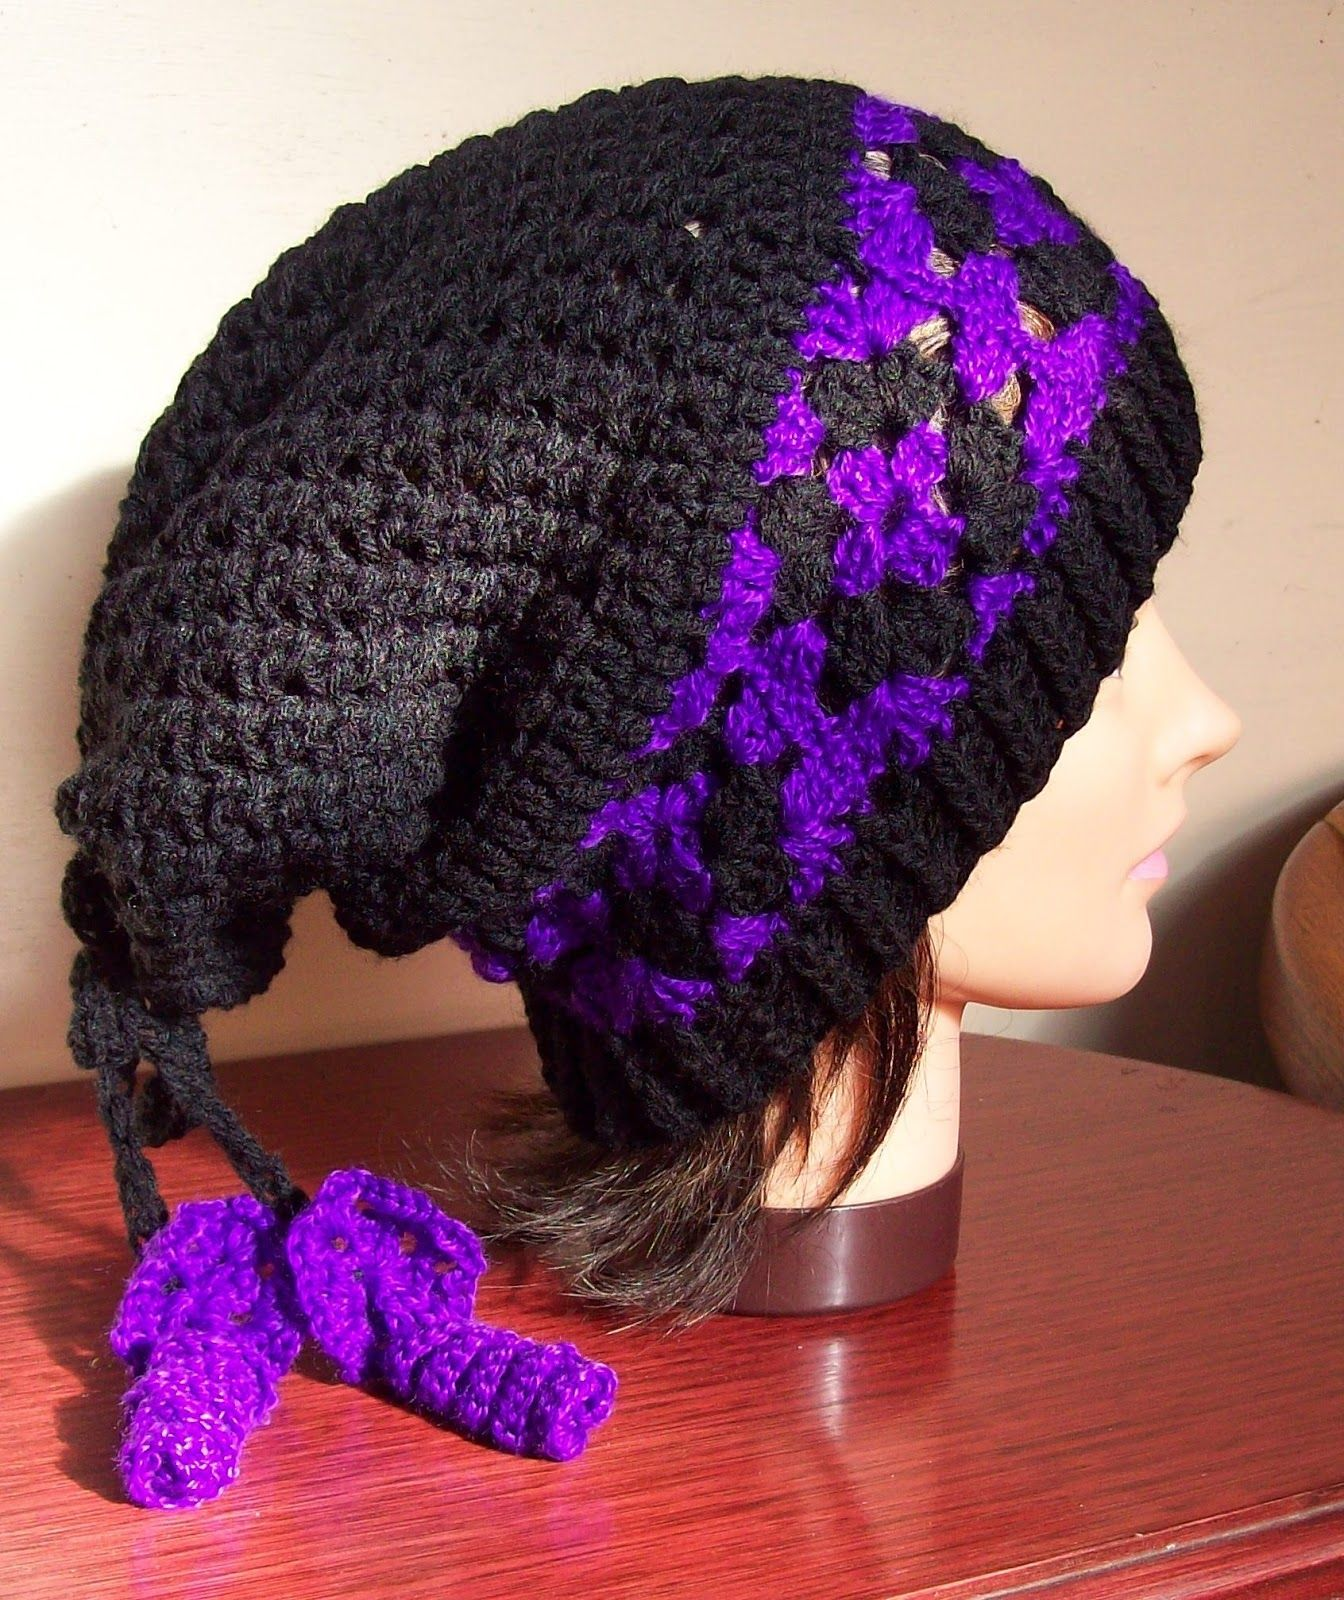 Free Adult Hat Patterns   Free crochet, Crochet and Patterns